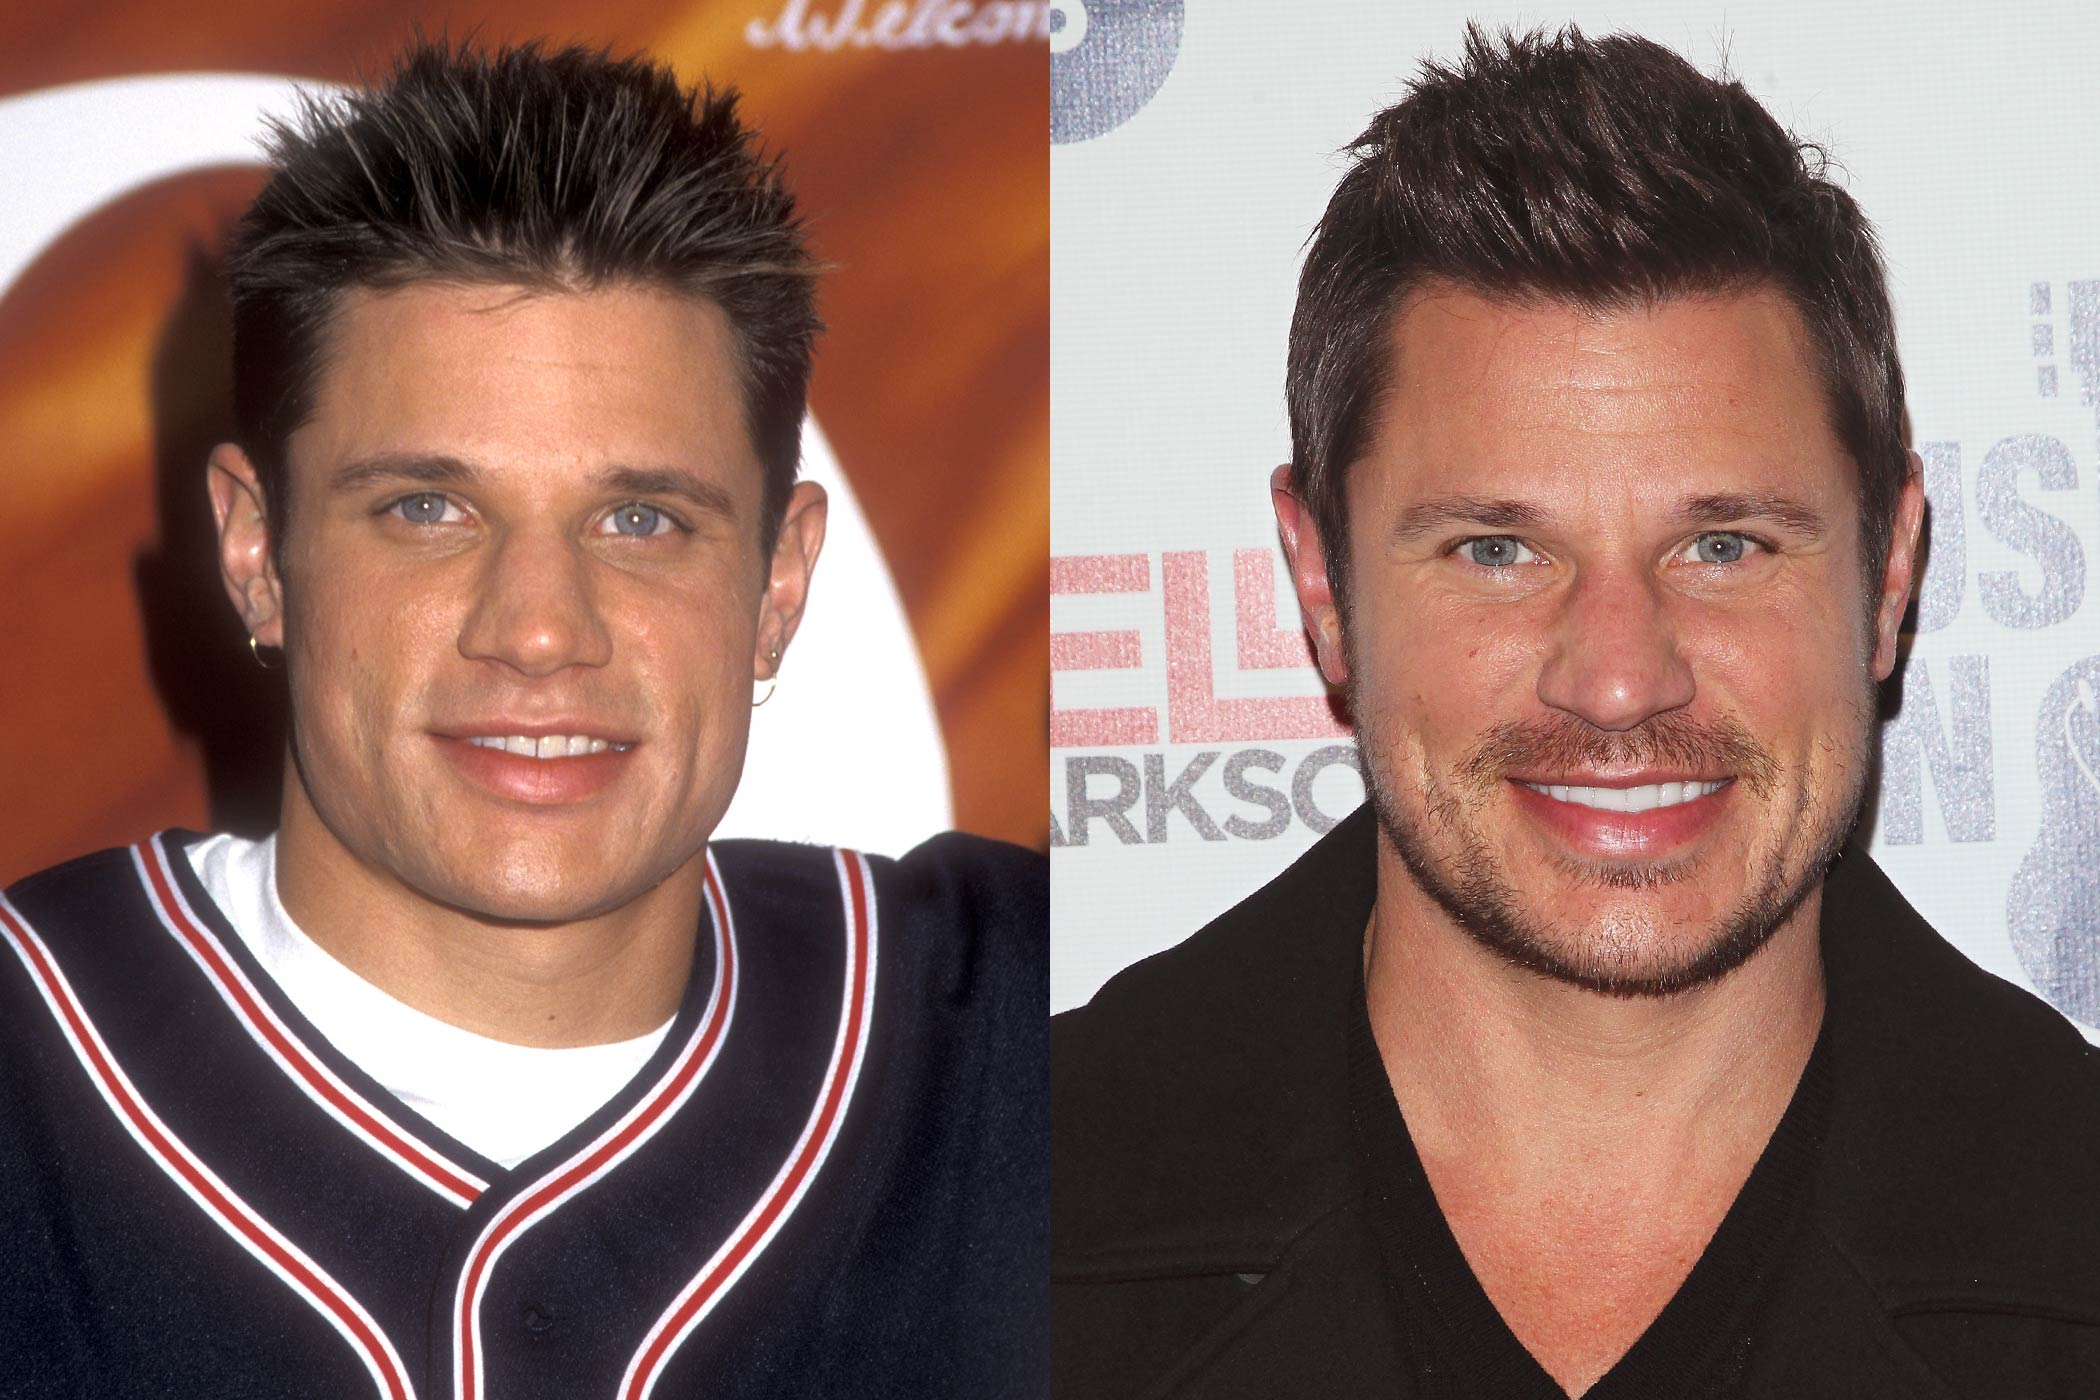 <strong>Nick Lachey (98°)</strong>